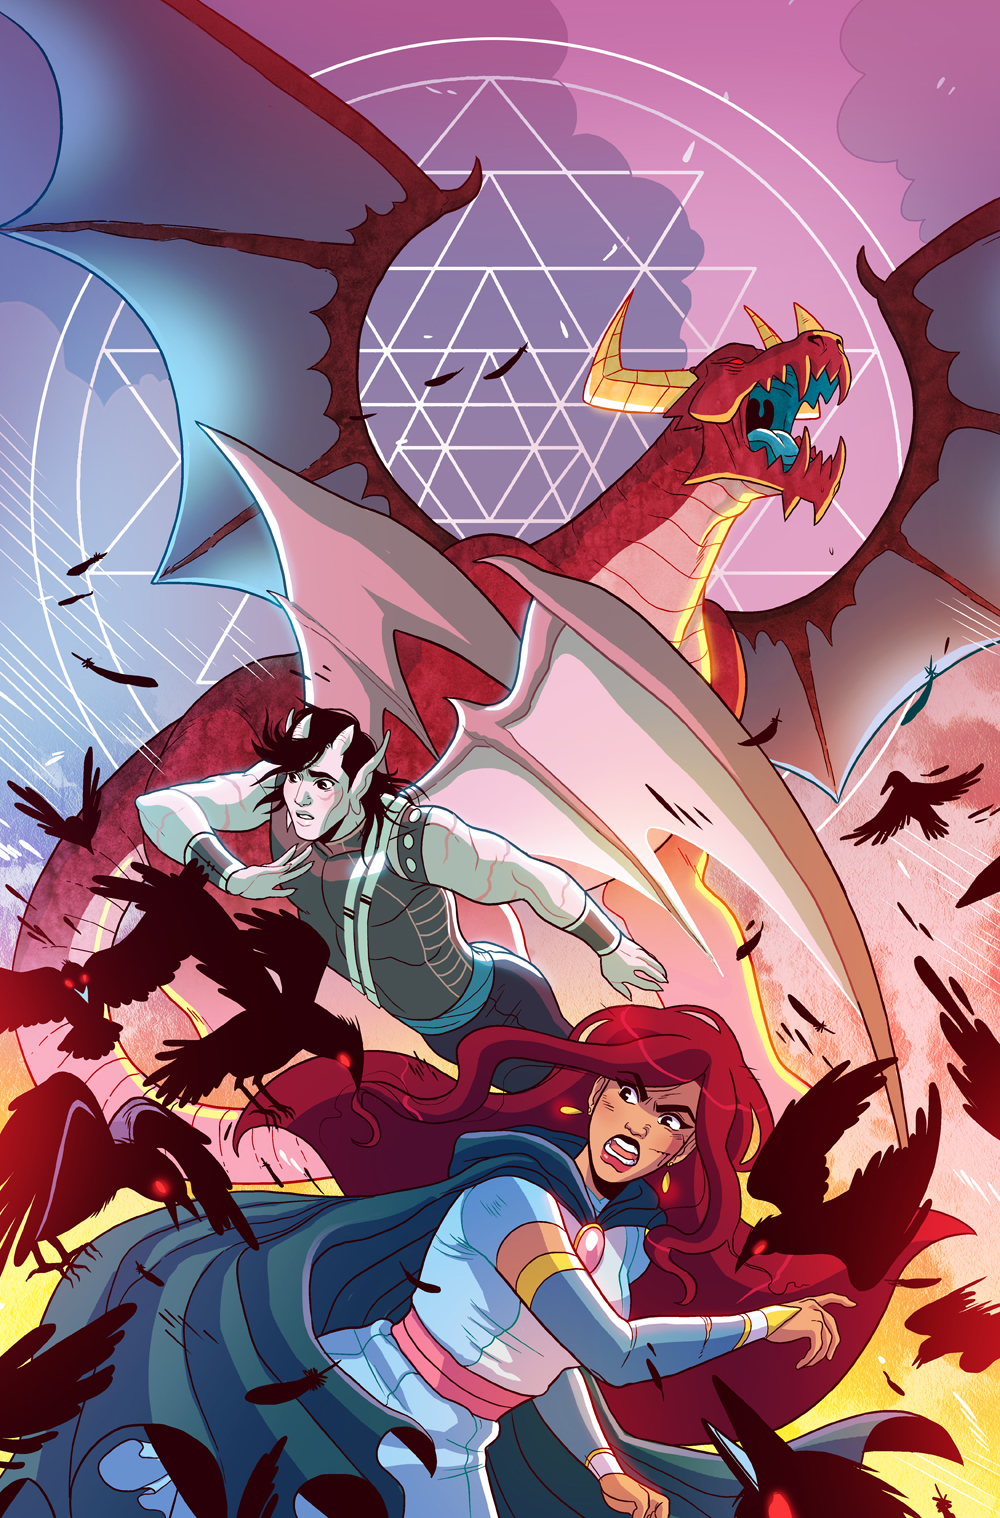 Another Castle issue #4 cover- Oni Press